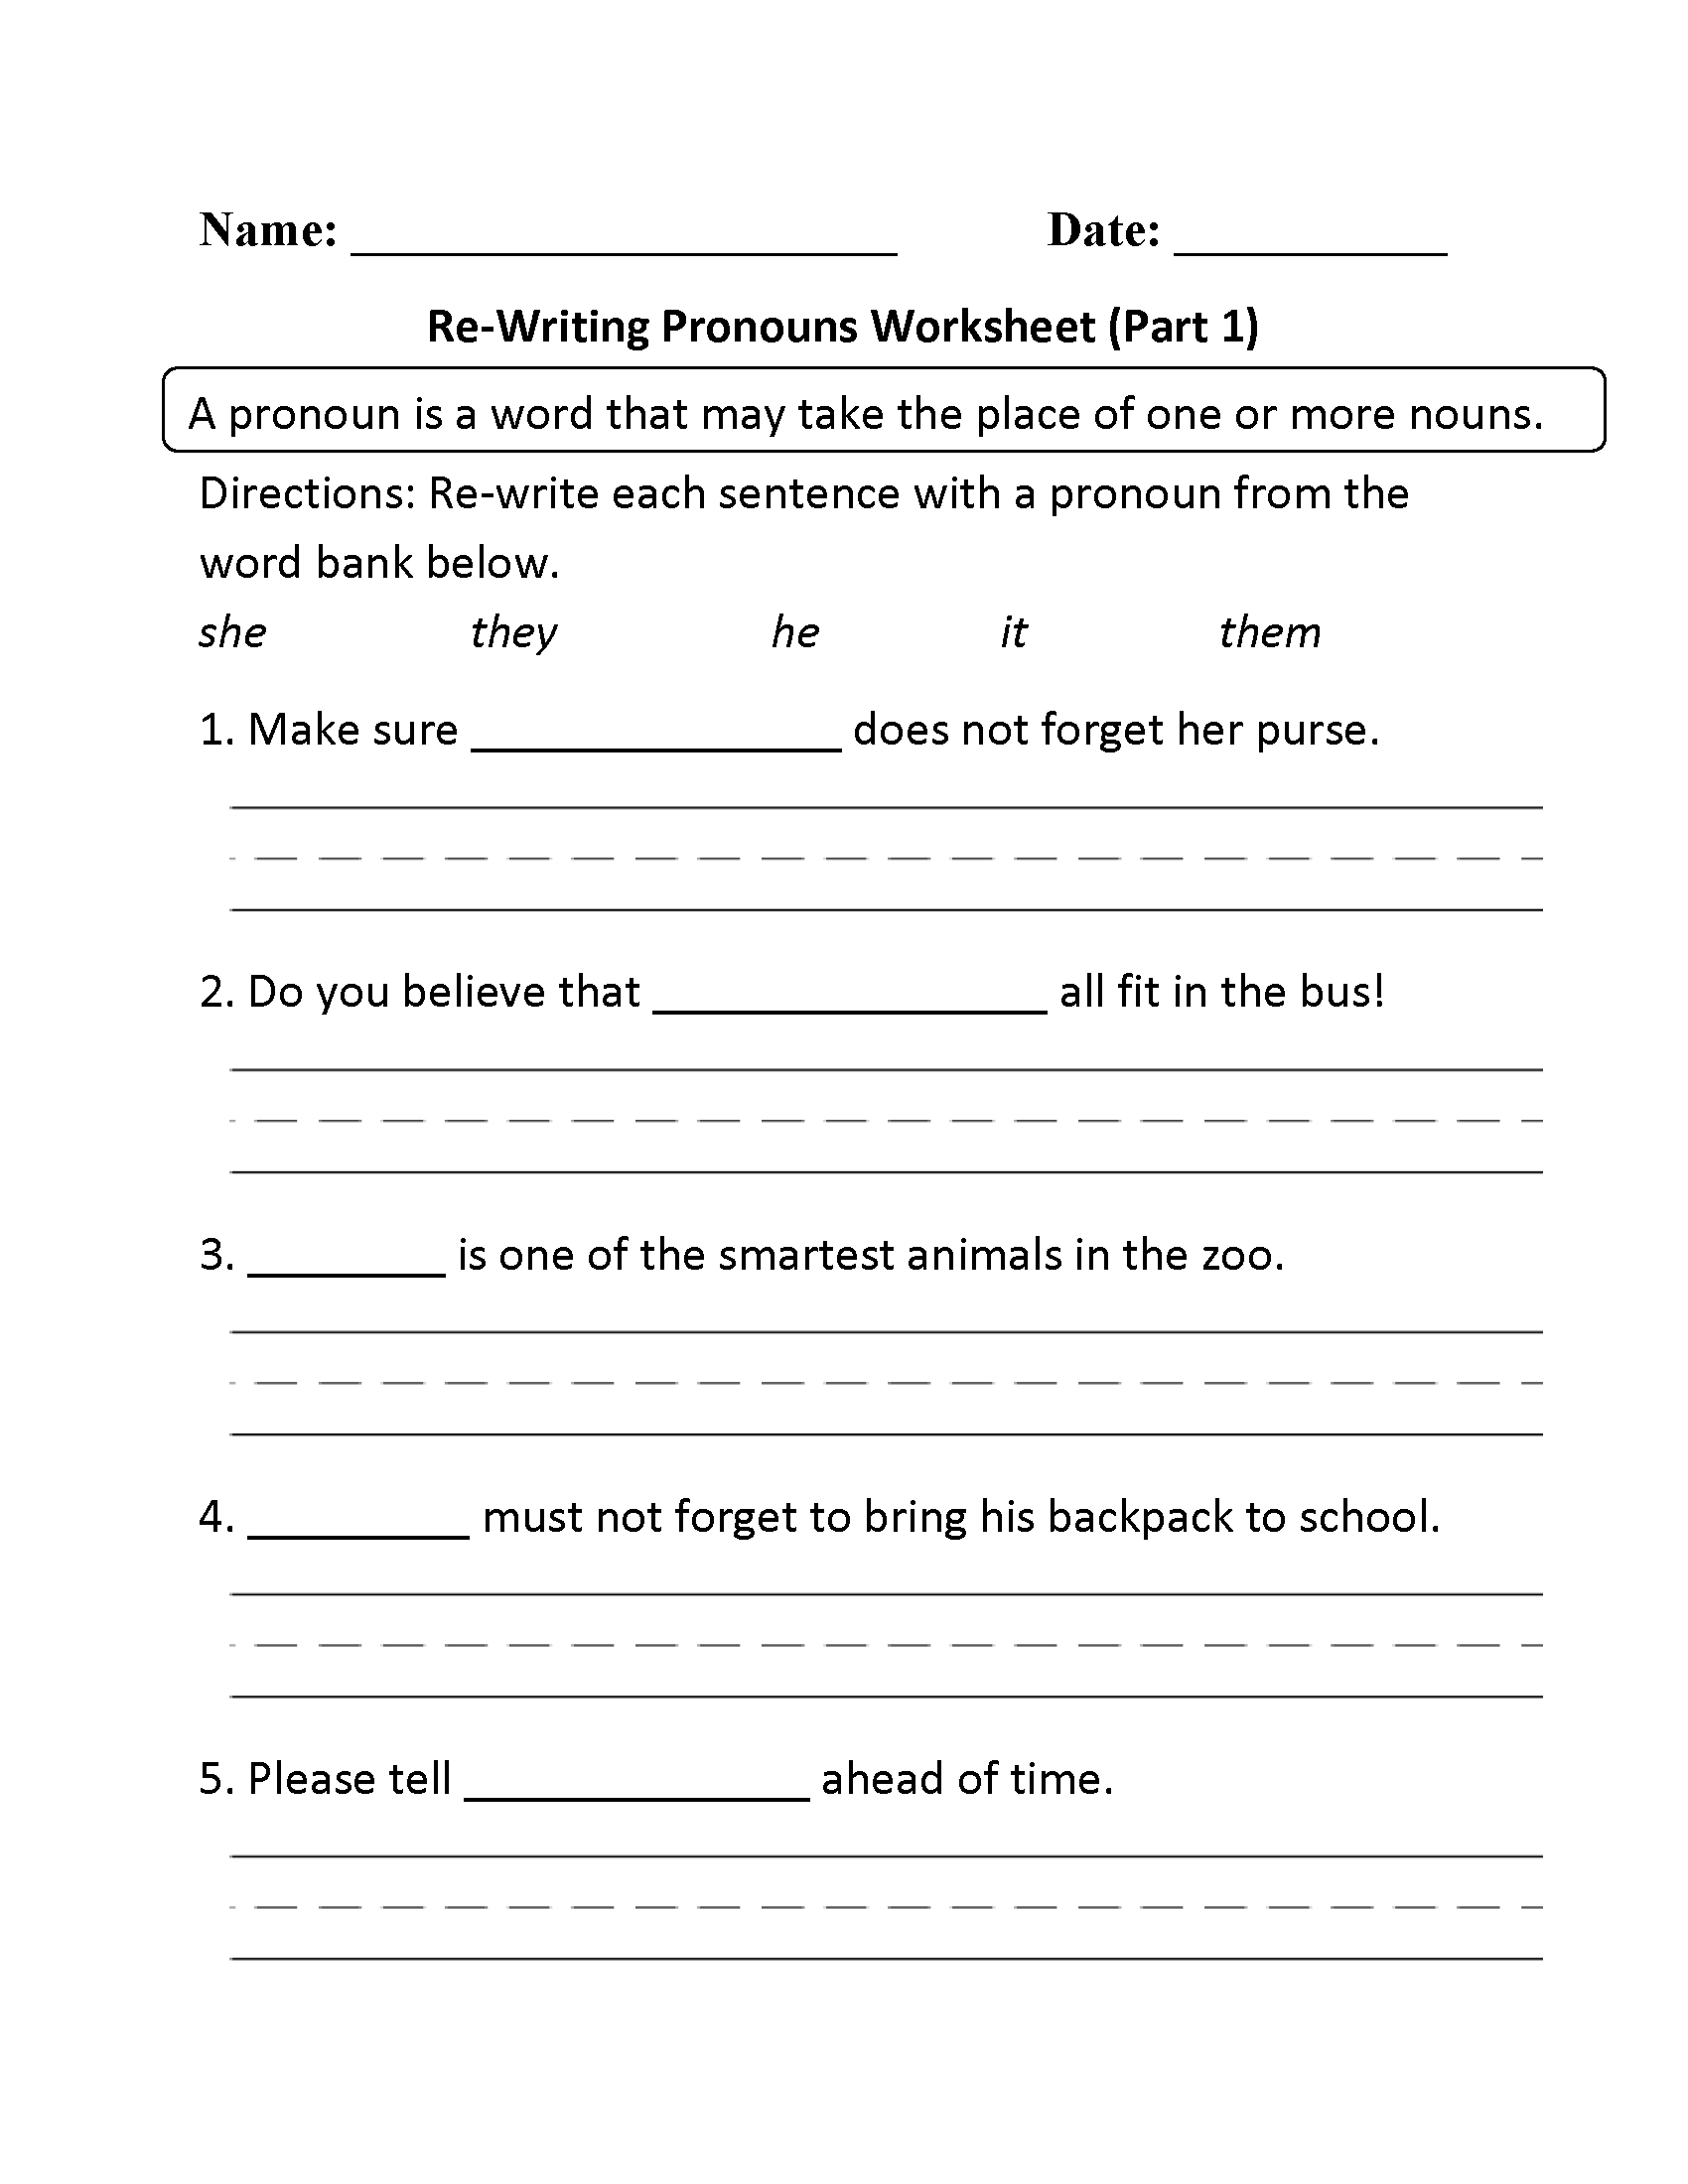 Pronouns Worksheets Regular Pronouns Worksheets